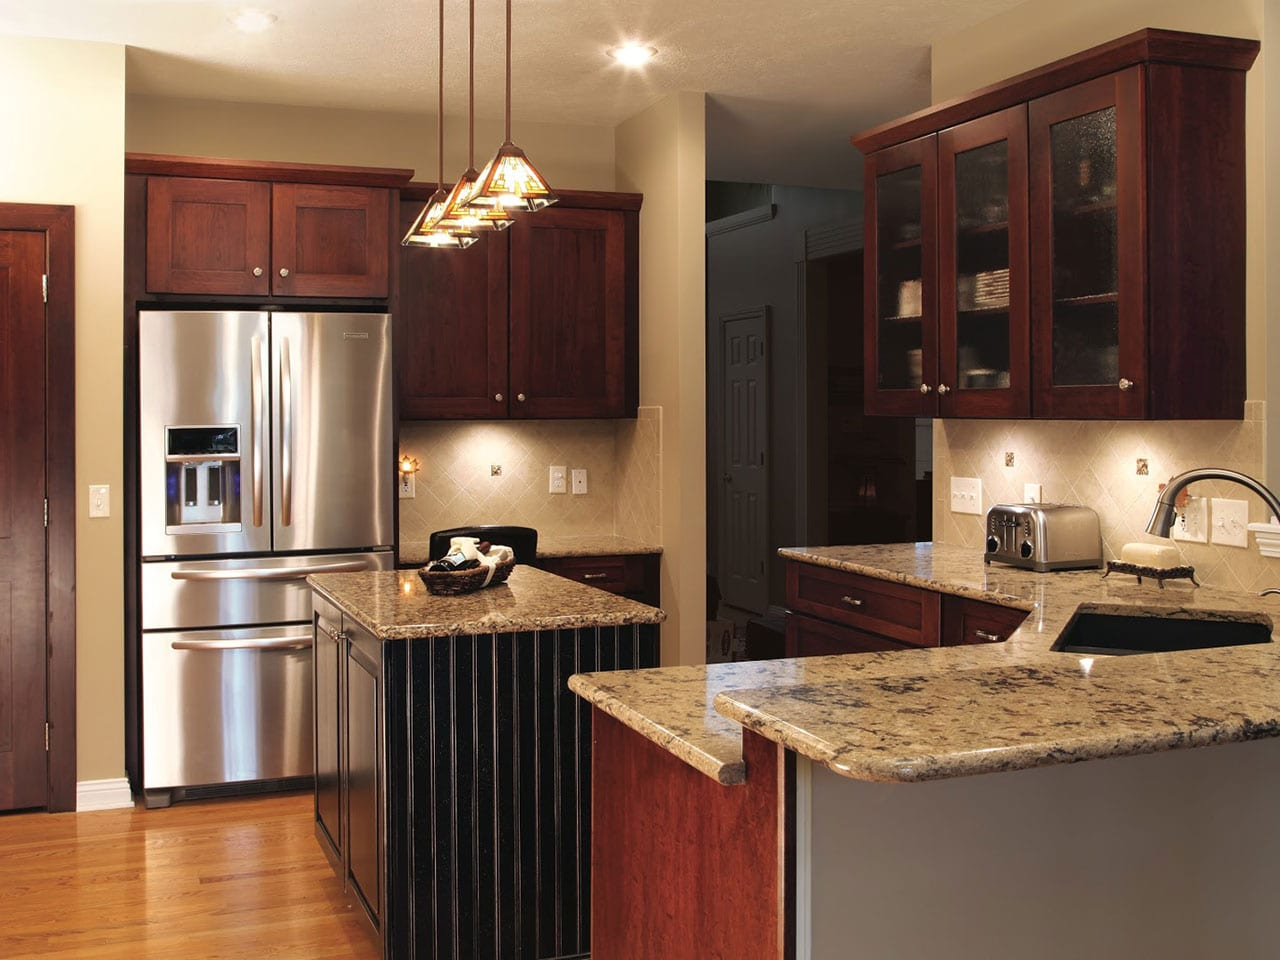 a picture of the kitchen in LaRose after refacing project